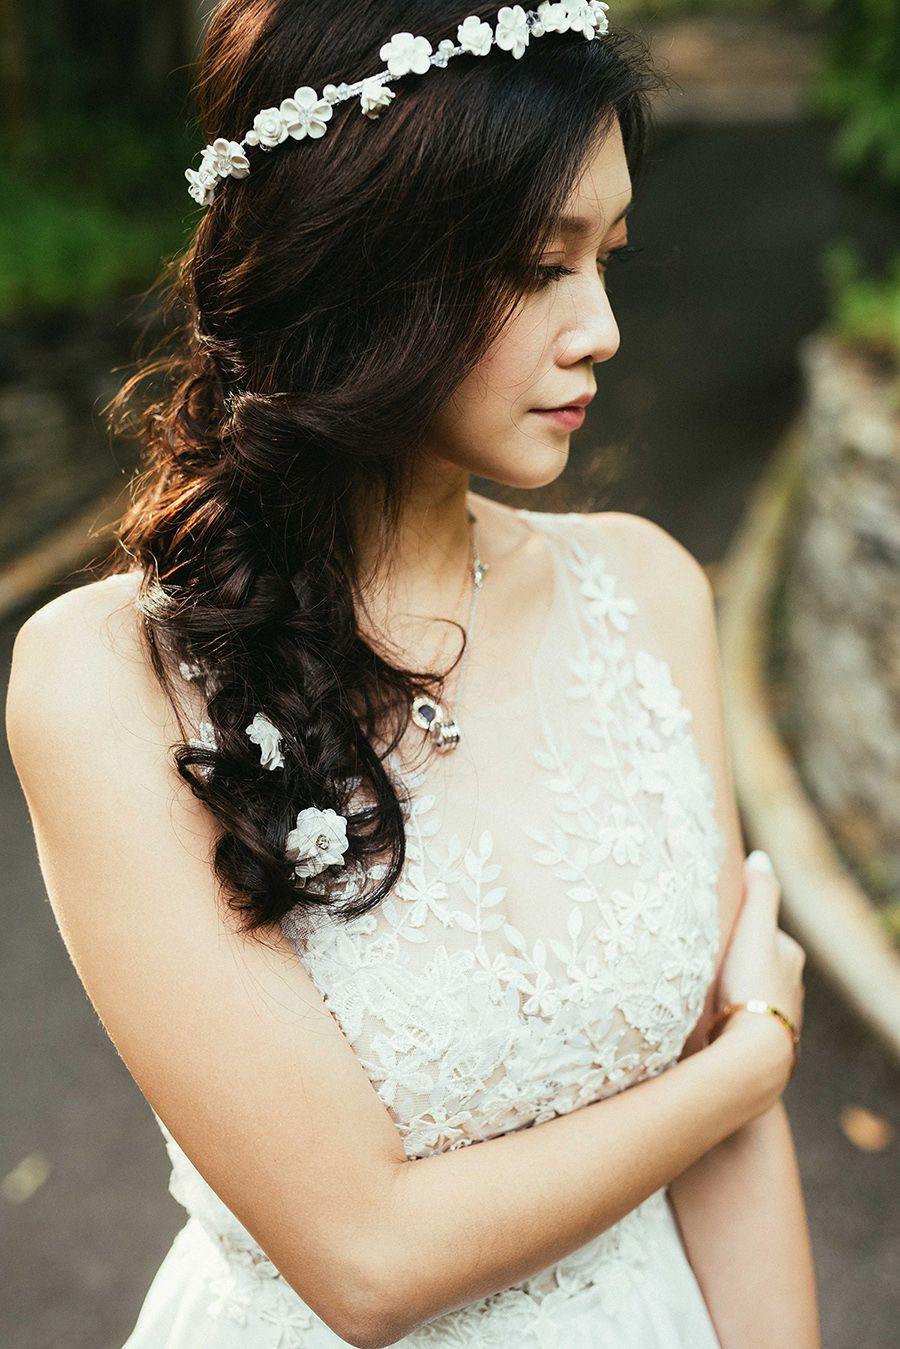 Paul and lurvies simple elegant wedding at capella and st regis white flower crown with beautiful tresses and flower patterned wedding dress top paul and lurvies pledged to spend the rest of their lives together amid izmirmasajfo